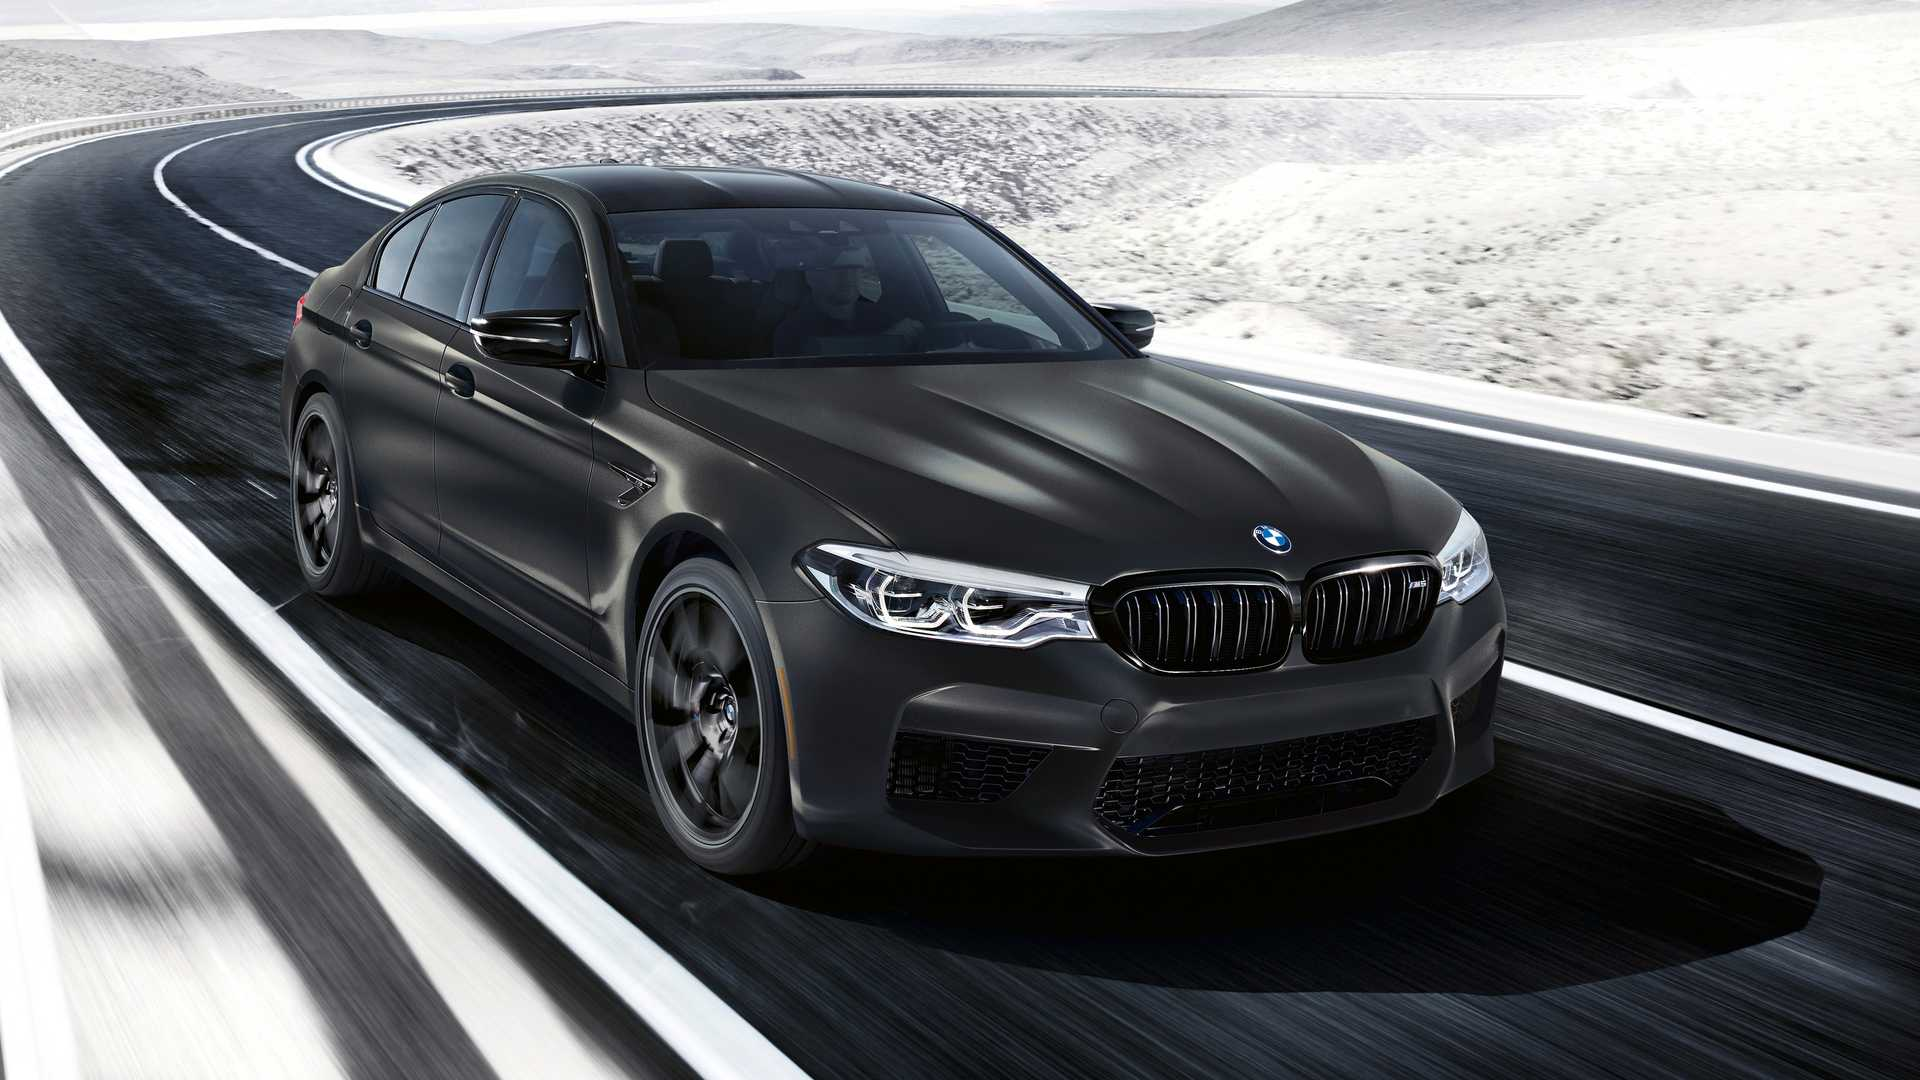 2020 BMW M5 Xdrive Awd Release Date and Concept